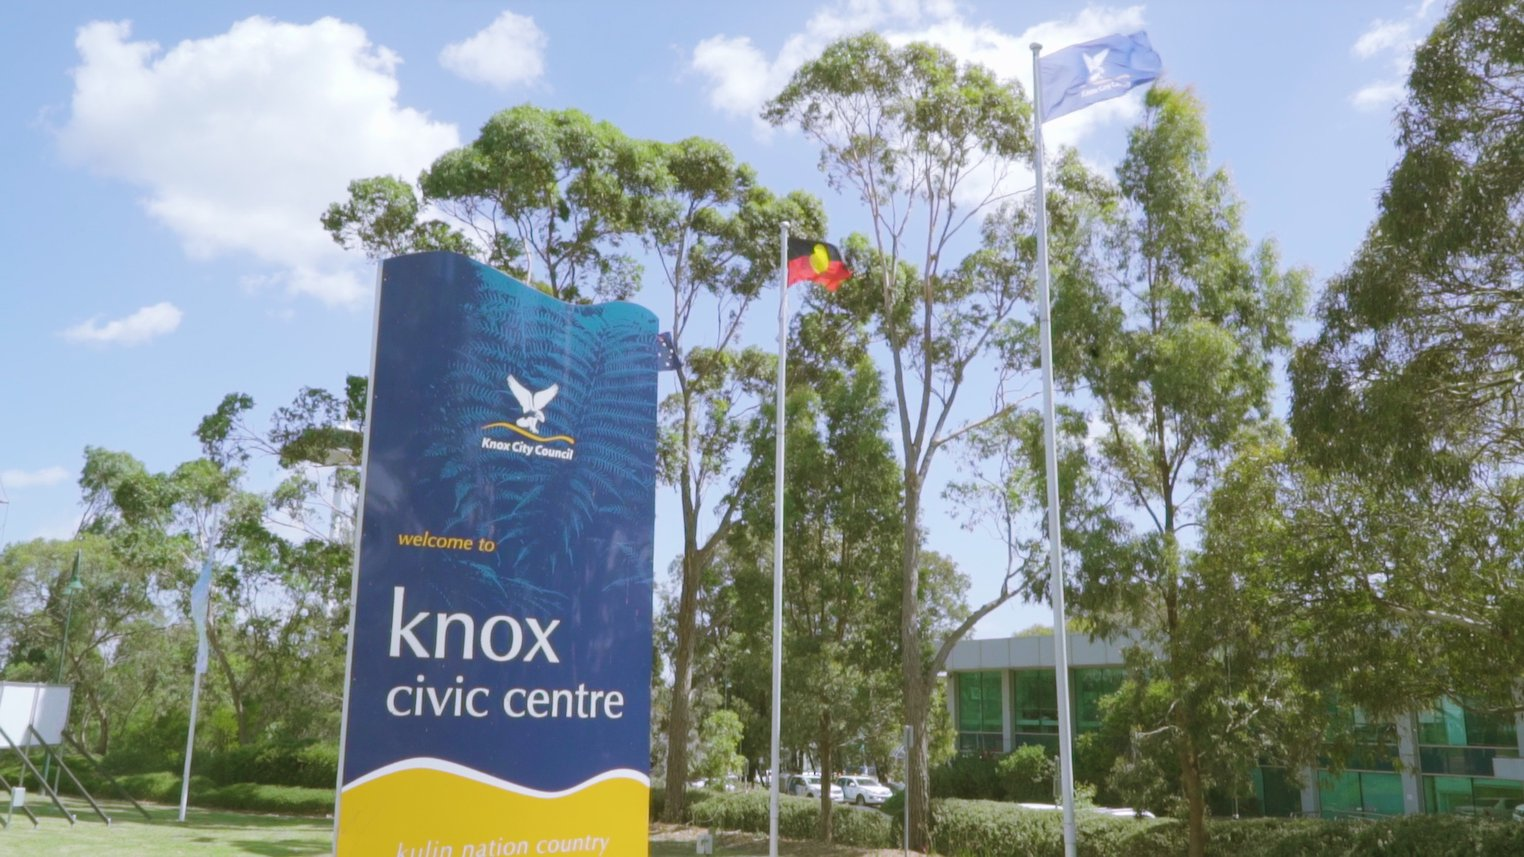 knox civic centre